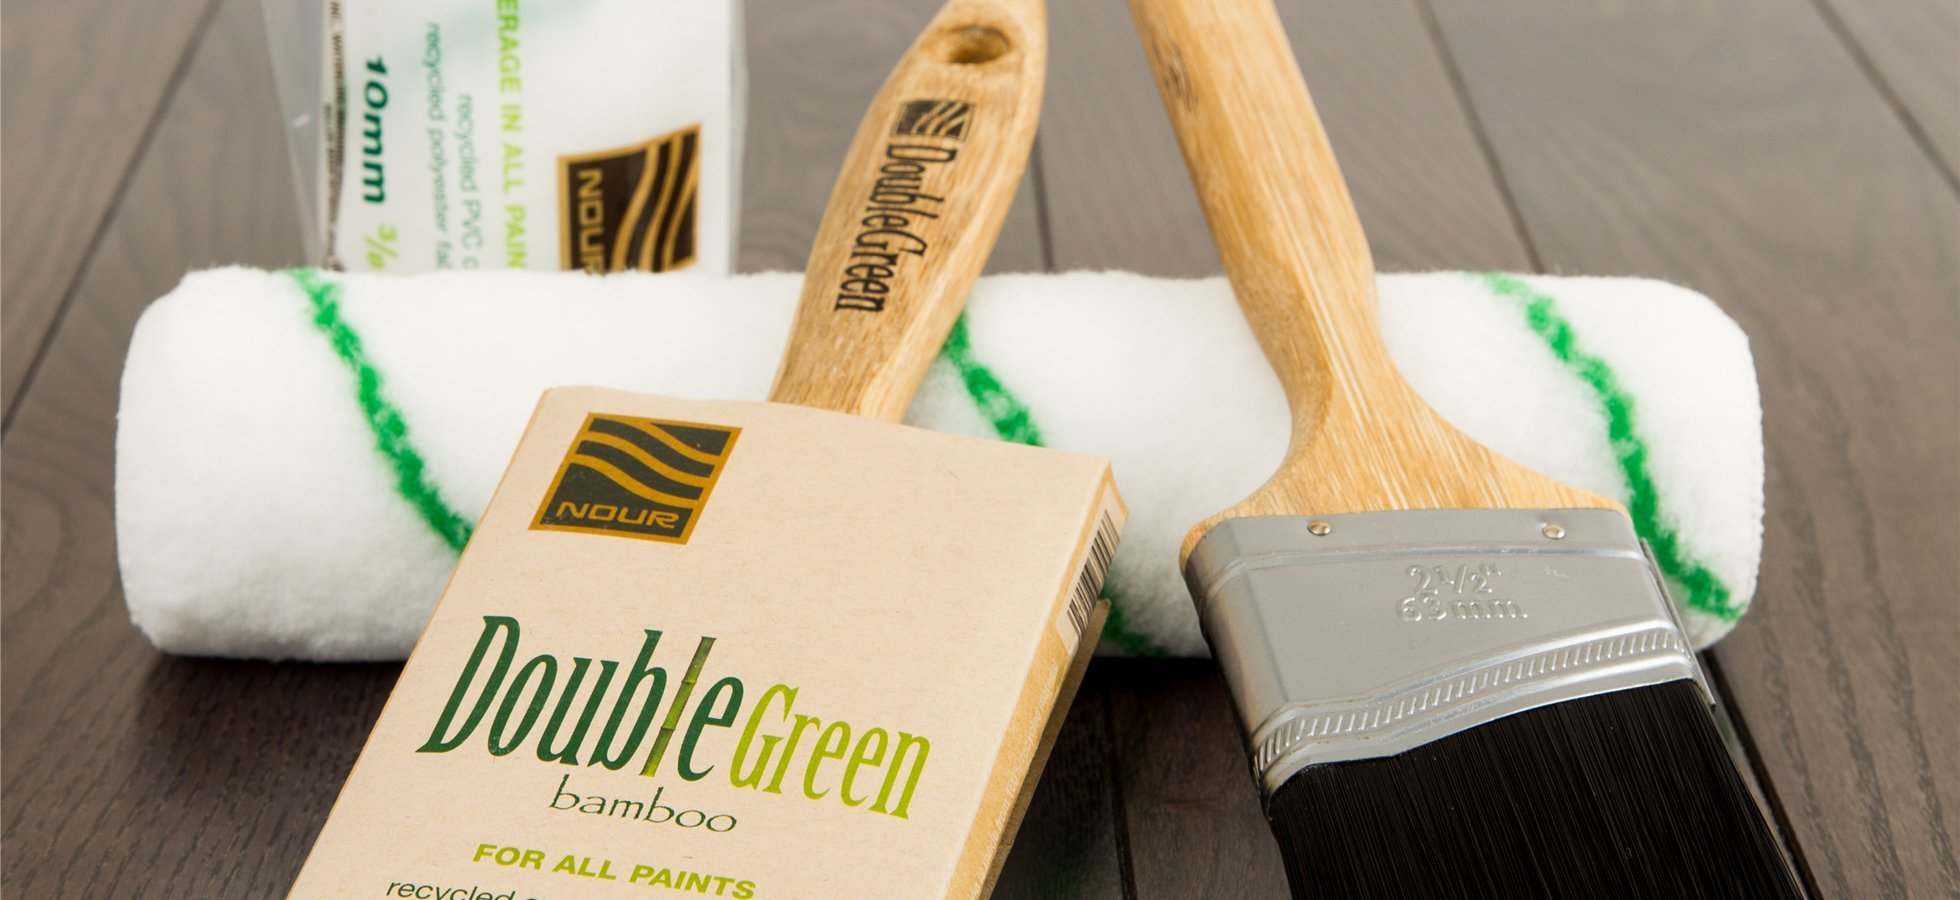 Double green brushes and rollers.